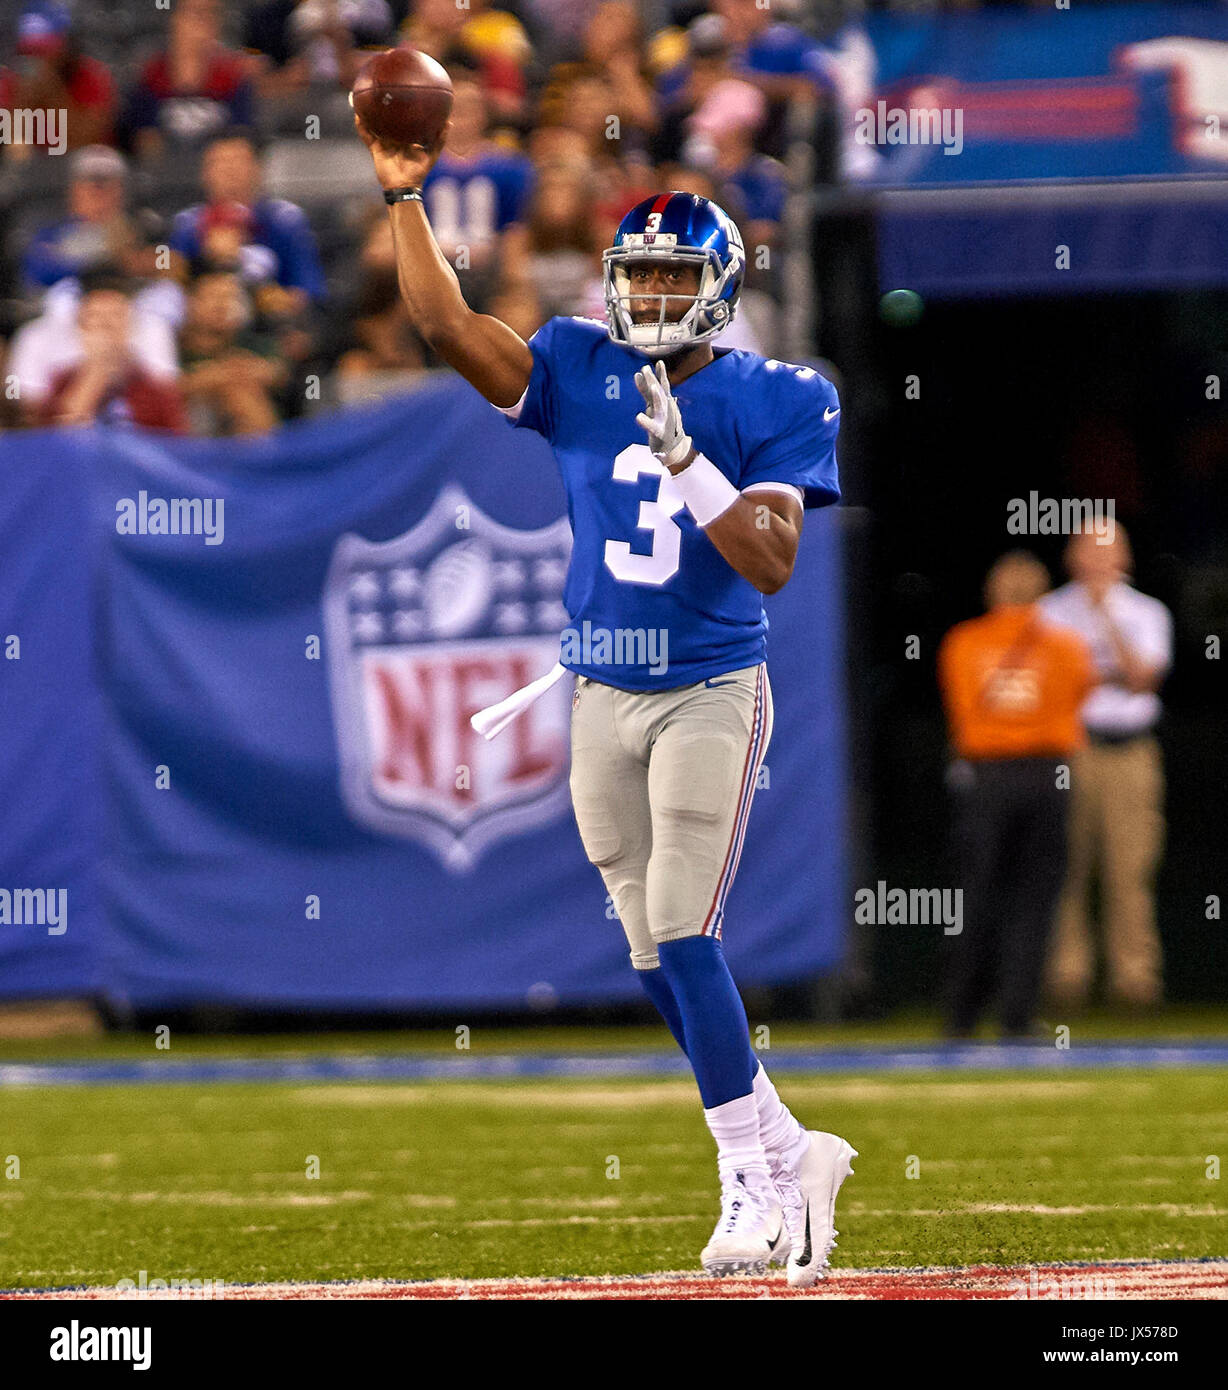 August 11, 2017 - East Rutherford, New Jersey, U.S. - Giants' quarterback Geno Smith (3) passes the ball during NFL pre-season action between the Pittsburgh Steelers and the New York Giants at MetLife Stadium in East Rutherford, New Jersey. Duncan Williams/CSM - Stock Image